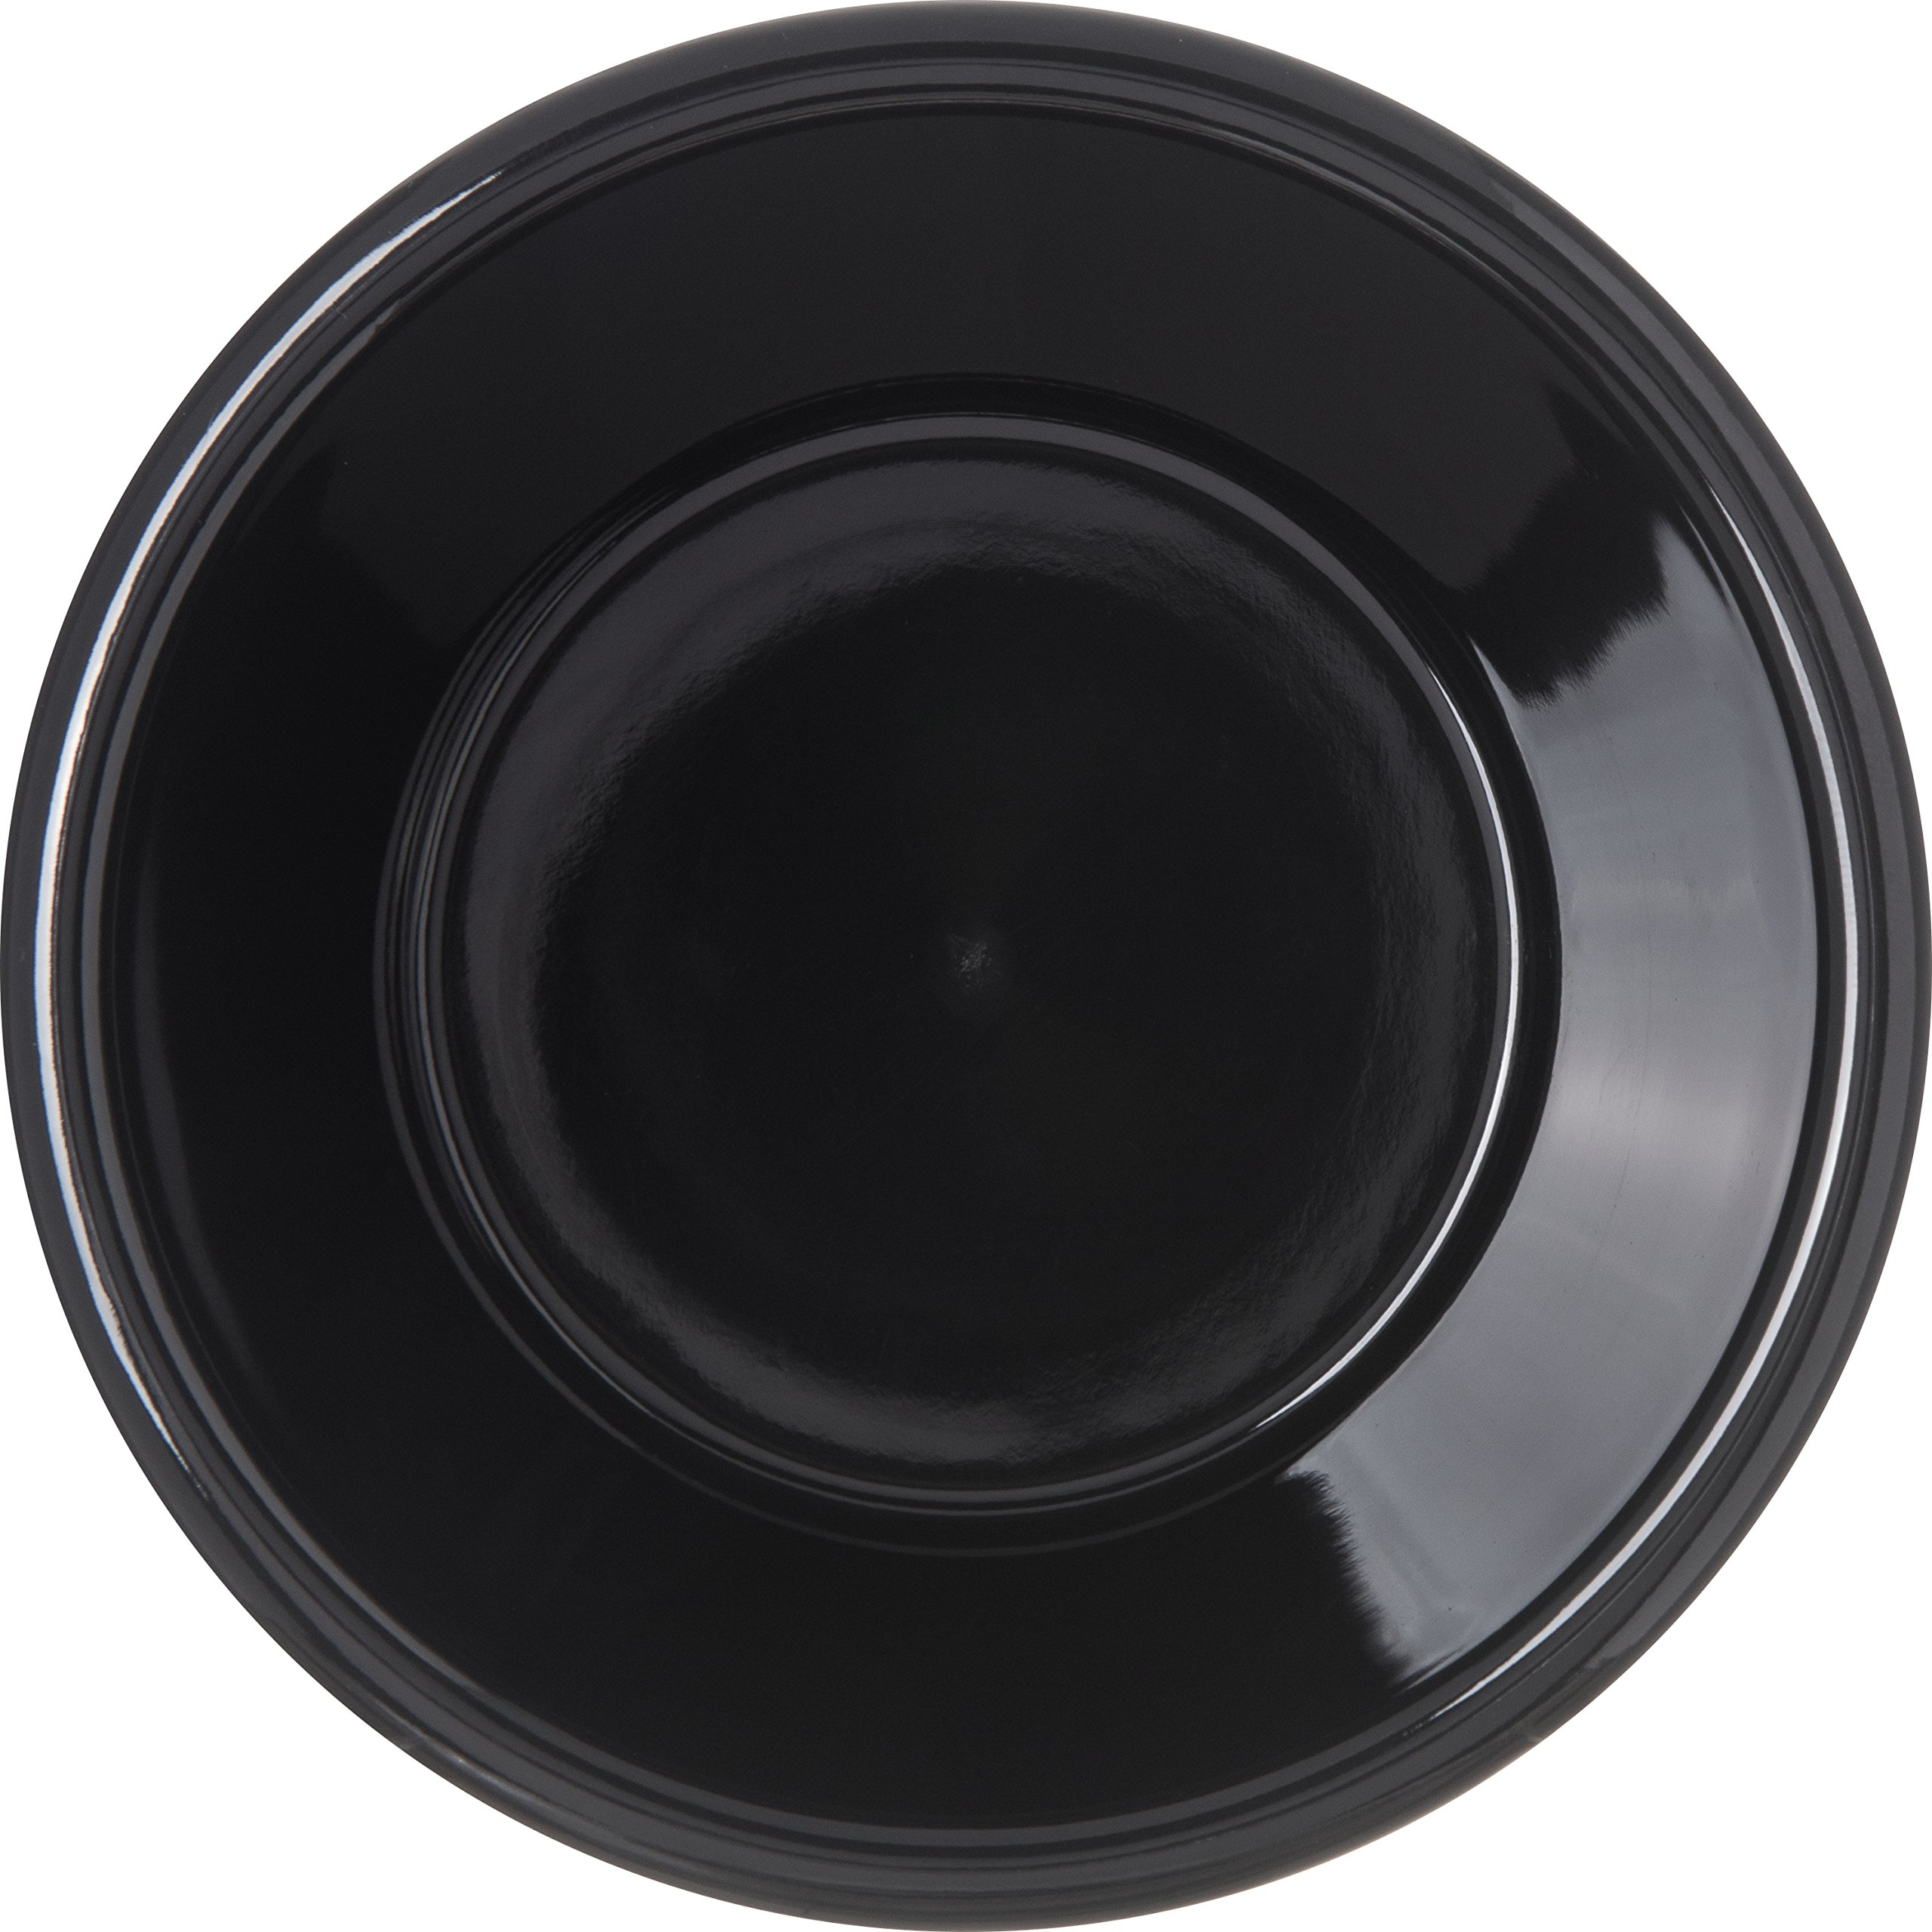 Carlisle 4312603 SAN Smooth Ramekin, 6 oz Capacity, 1.80'' Height, Black (Case of 48) by Carlisle (Image #3)